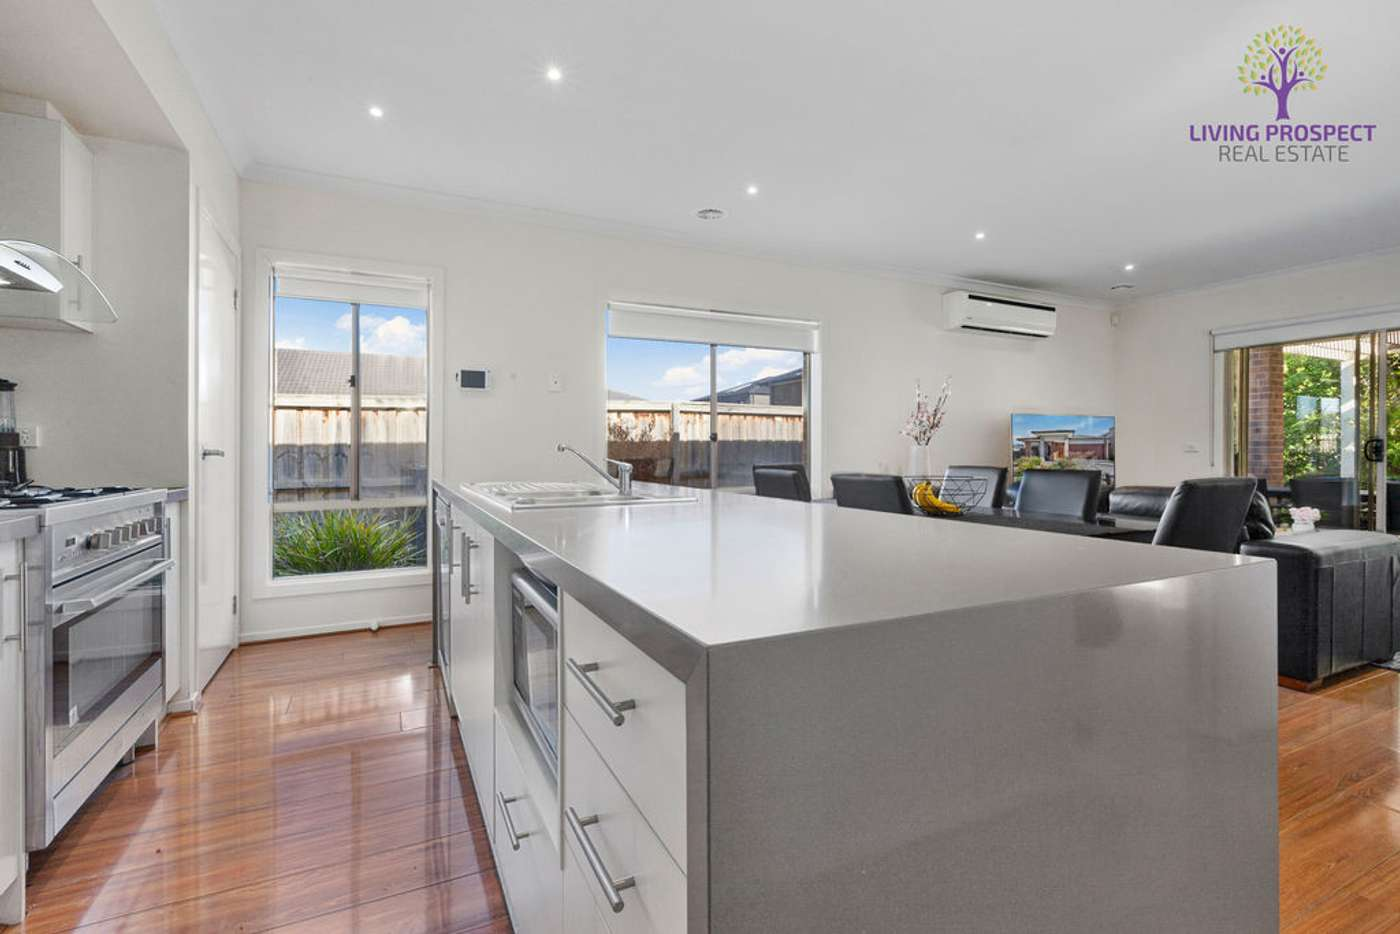 Sixth view of Homely house listing, 26 Orpheus Street, Point Cook VIC 3030